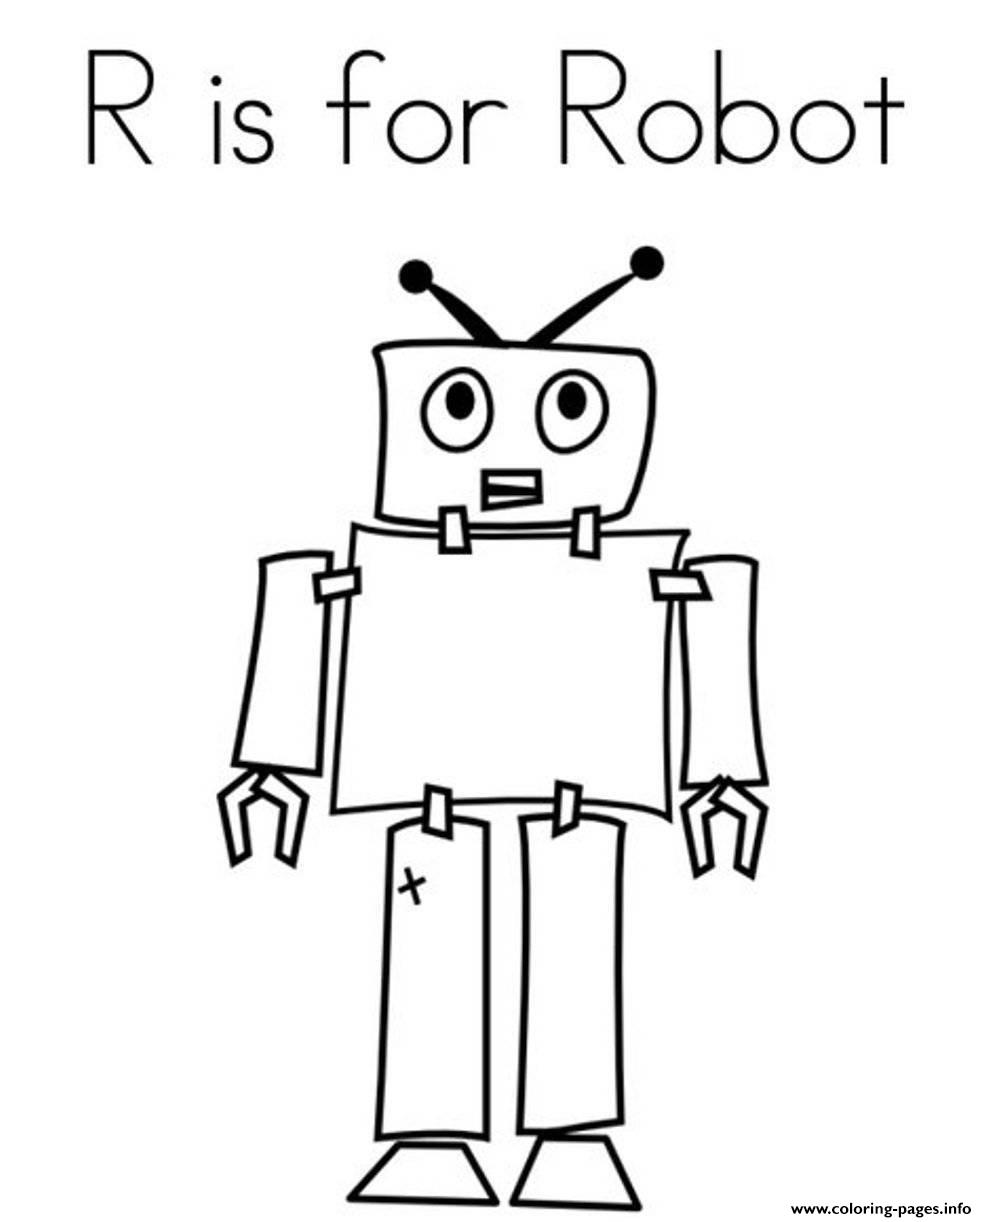 Robot Free Alphabet S9cde coloring pages